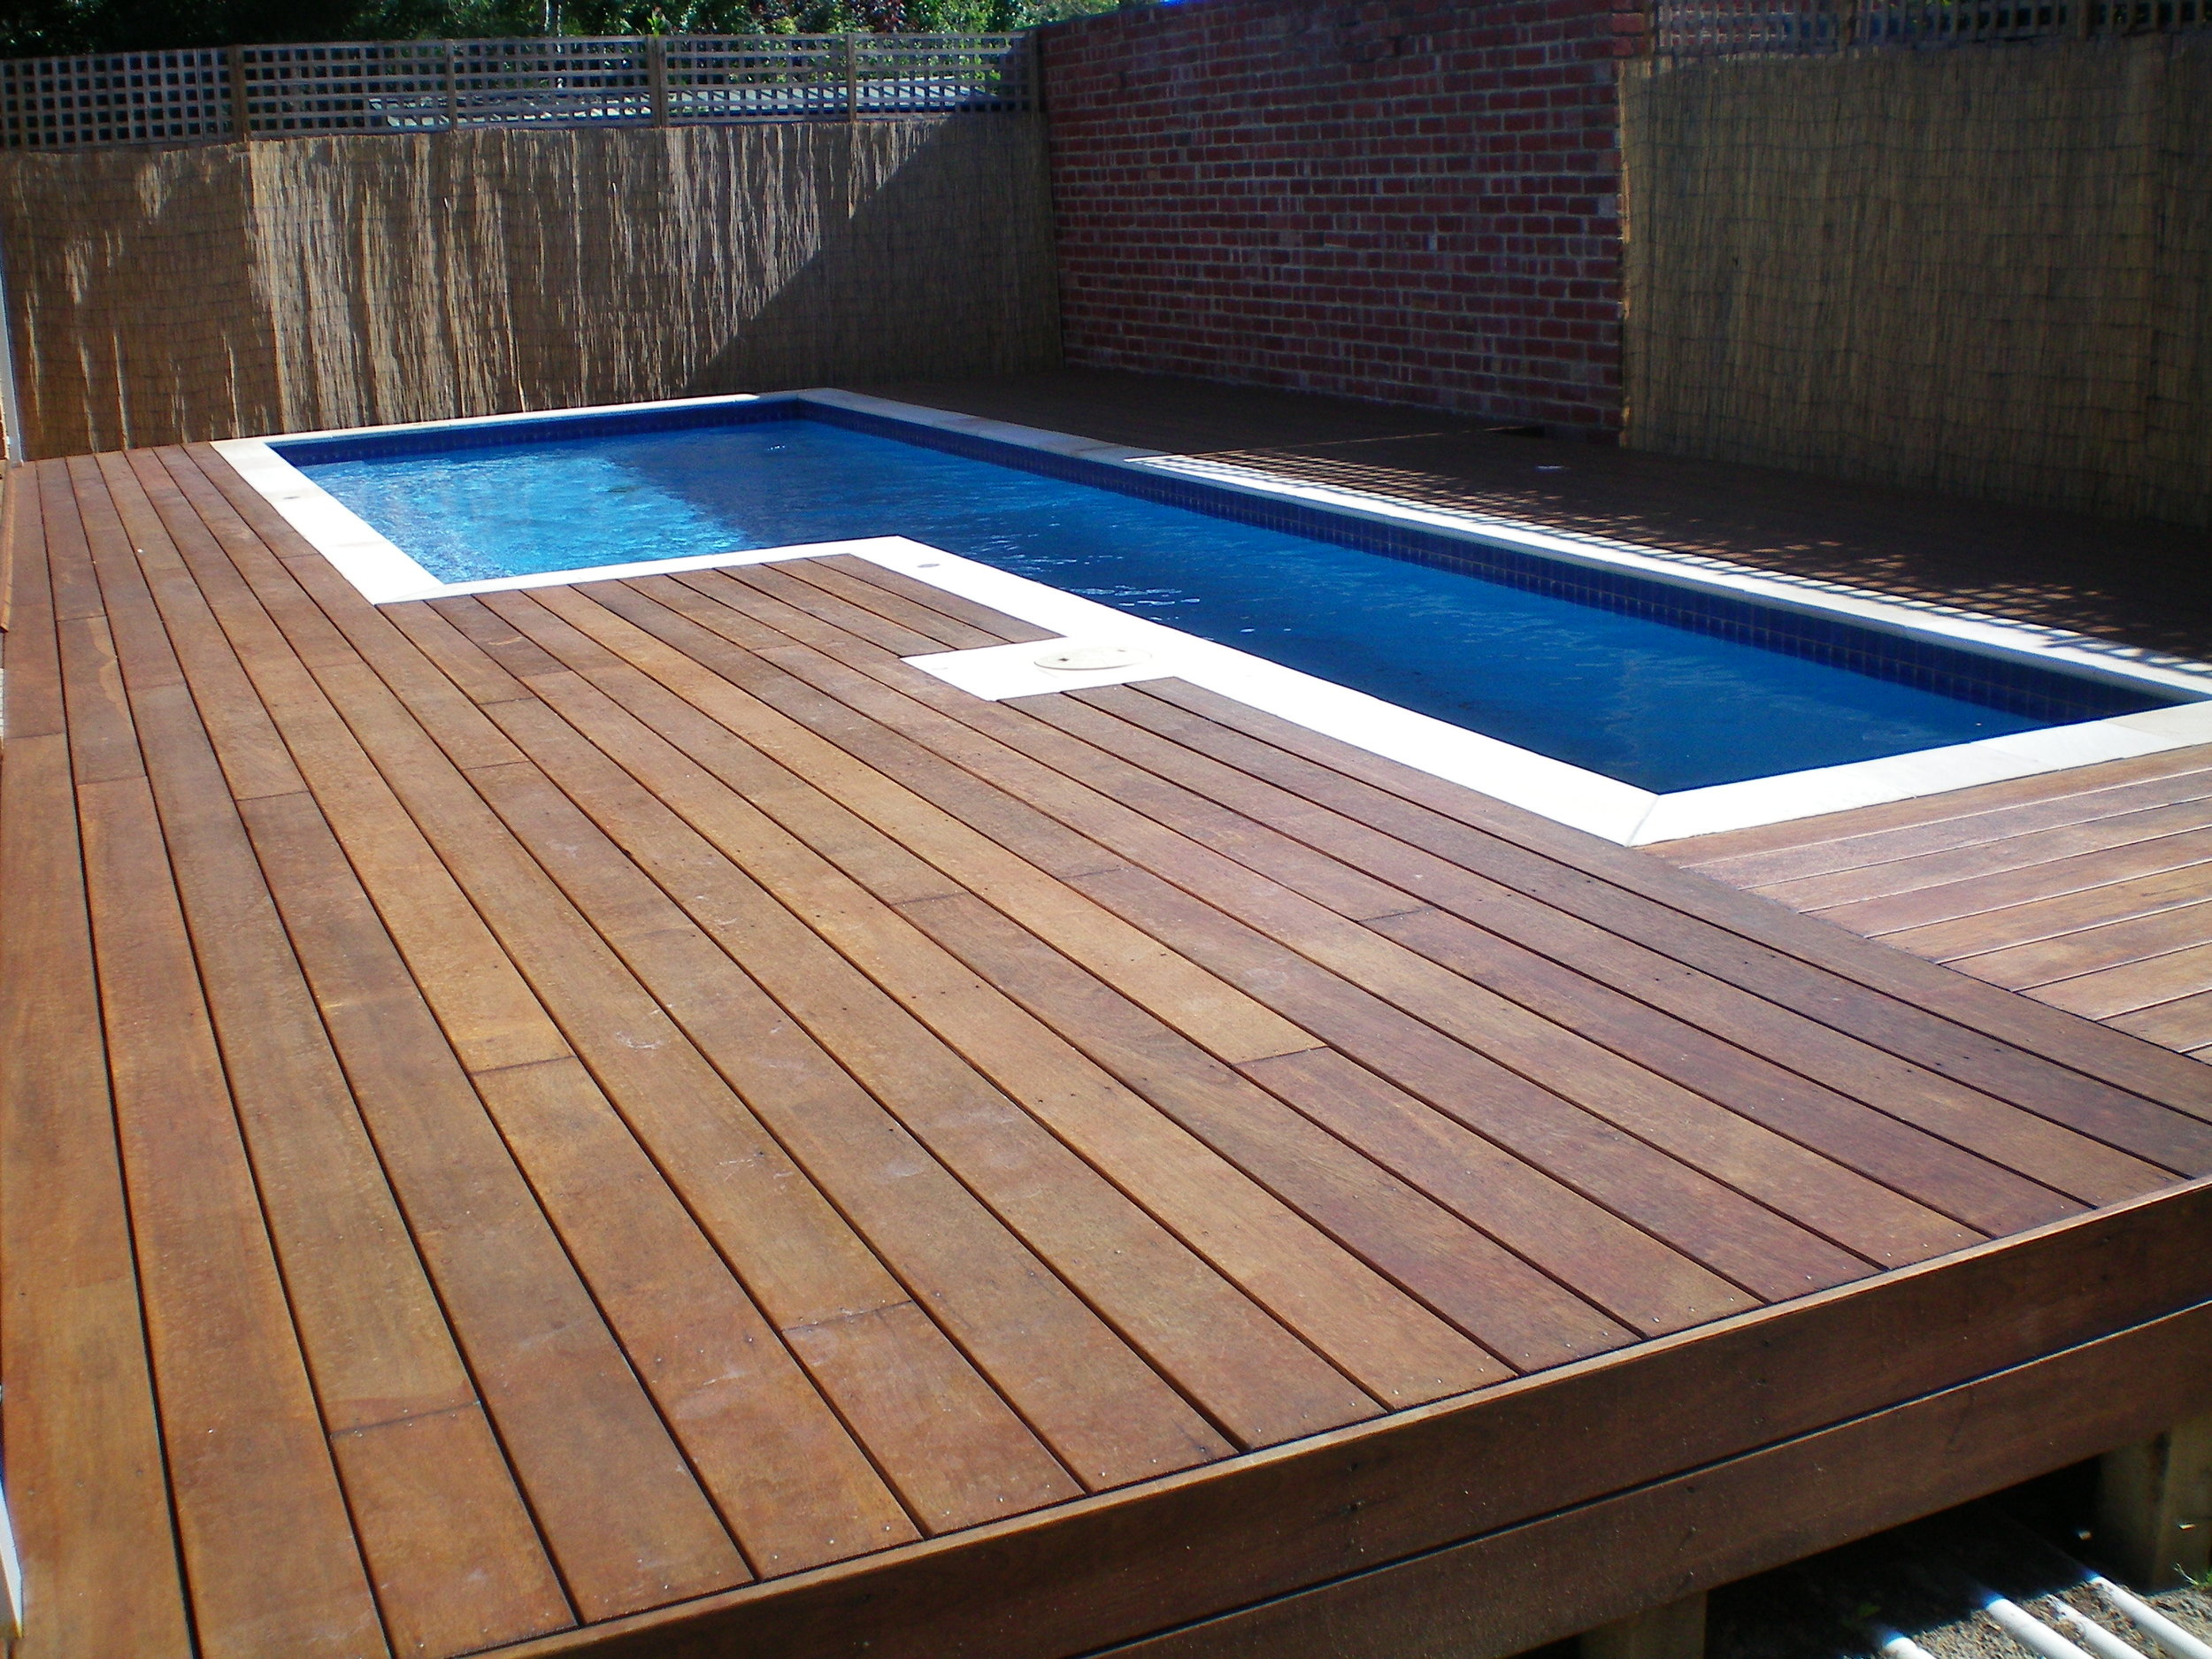 21-attractive-wooden-deck-design-of-swimming-pool-aida-homes-nice-above-ground-swimming-pool-designs.jpg